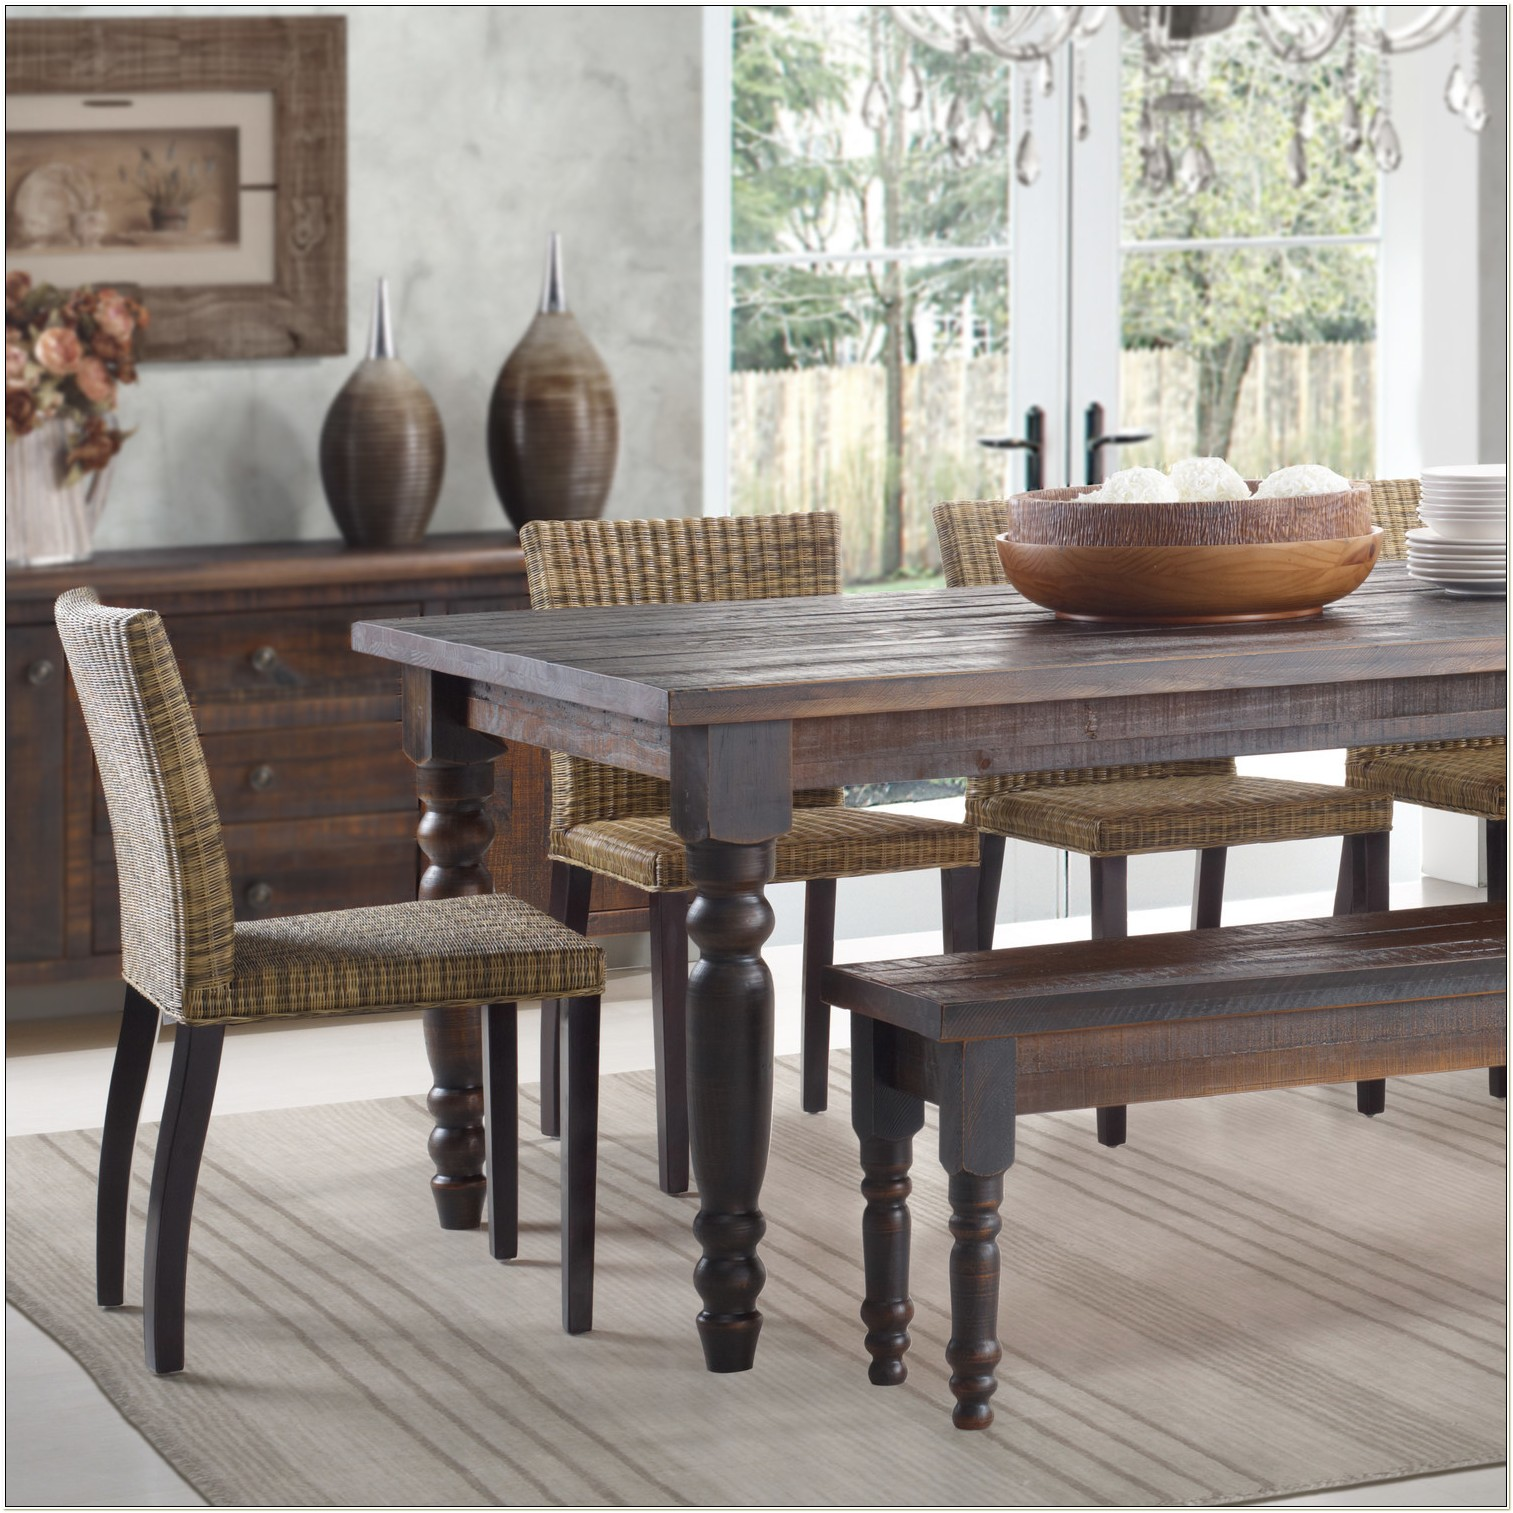 Wayfair Table And Chairs